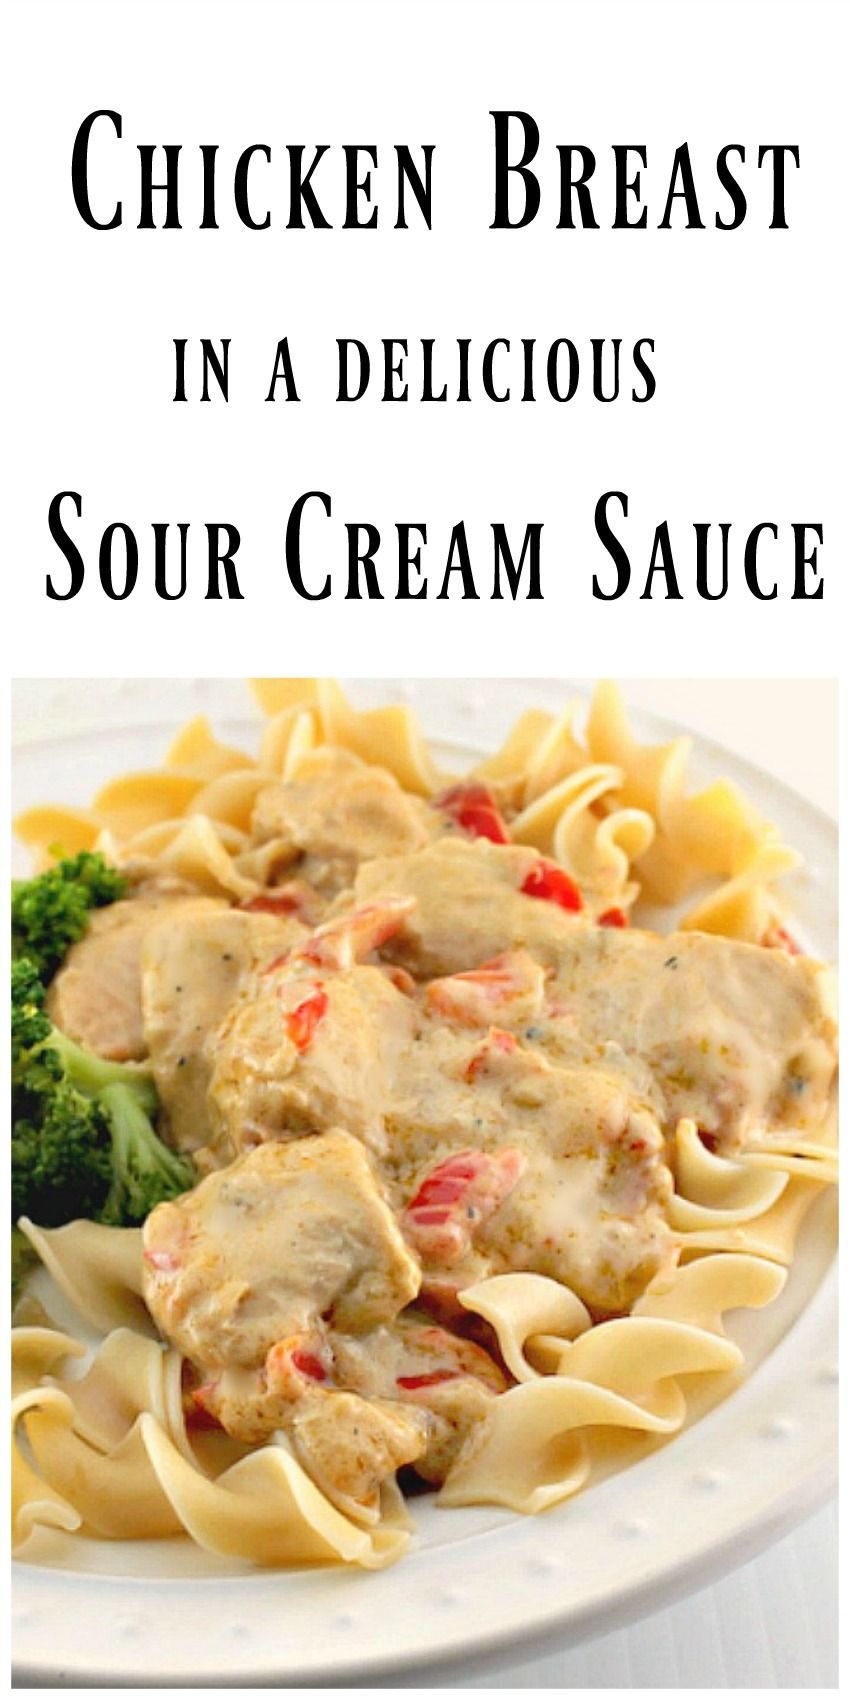 Sour cream sauce: a variety of flavors